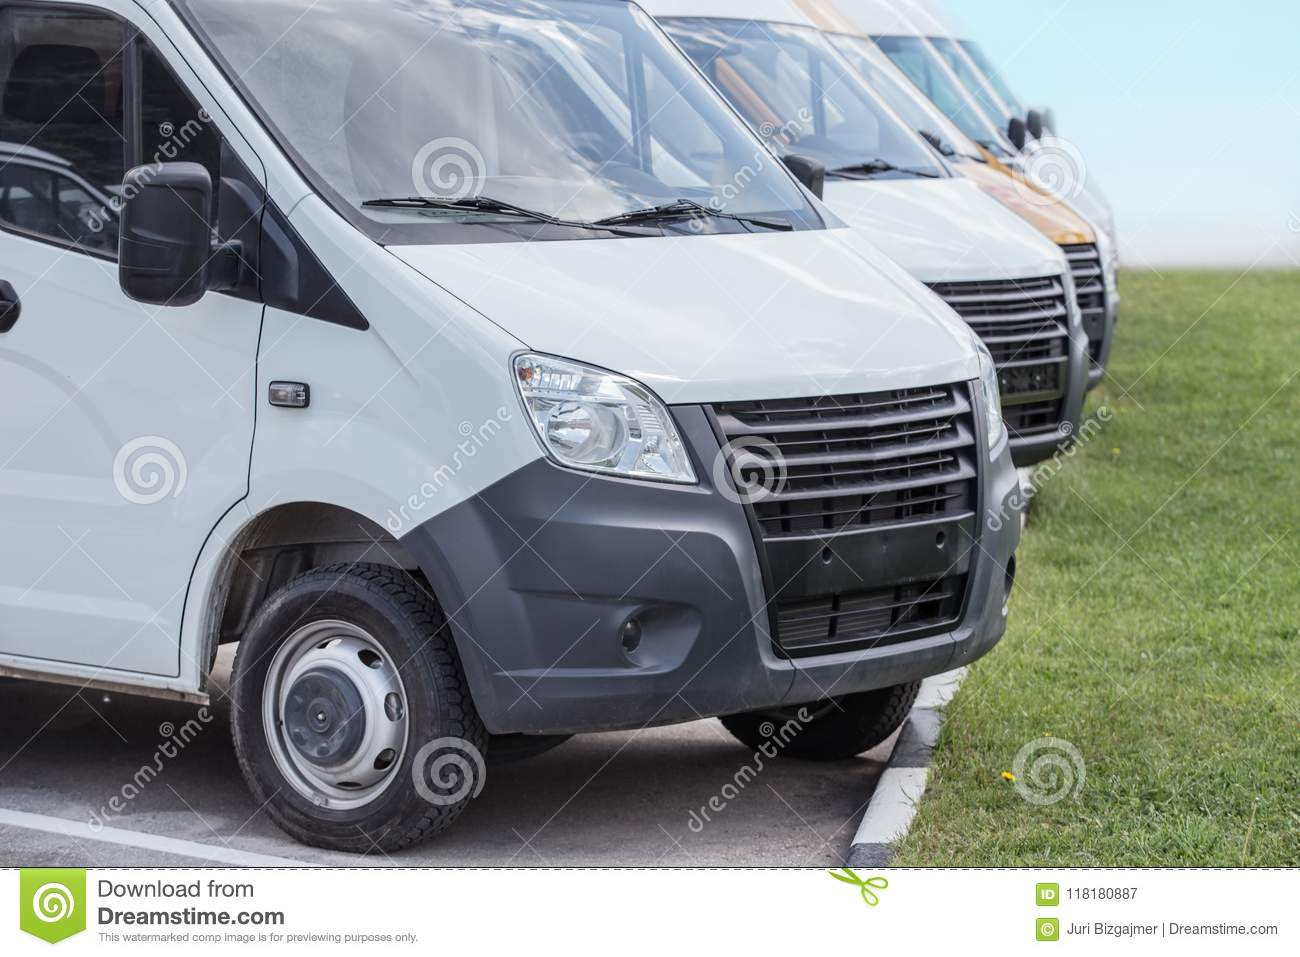 eb2271990b Minibuses and vans outside stock image. Image of parking - 118180887